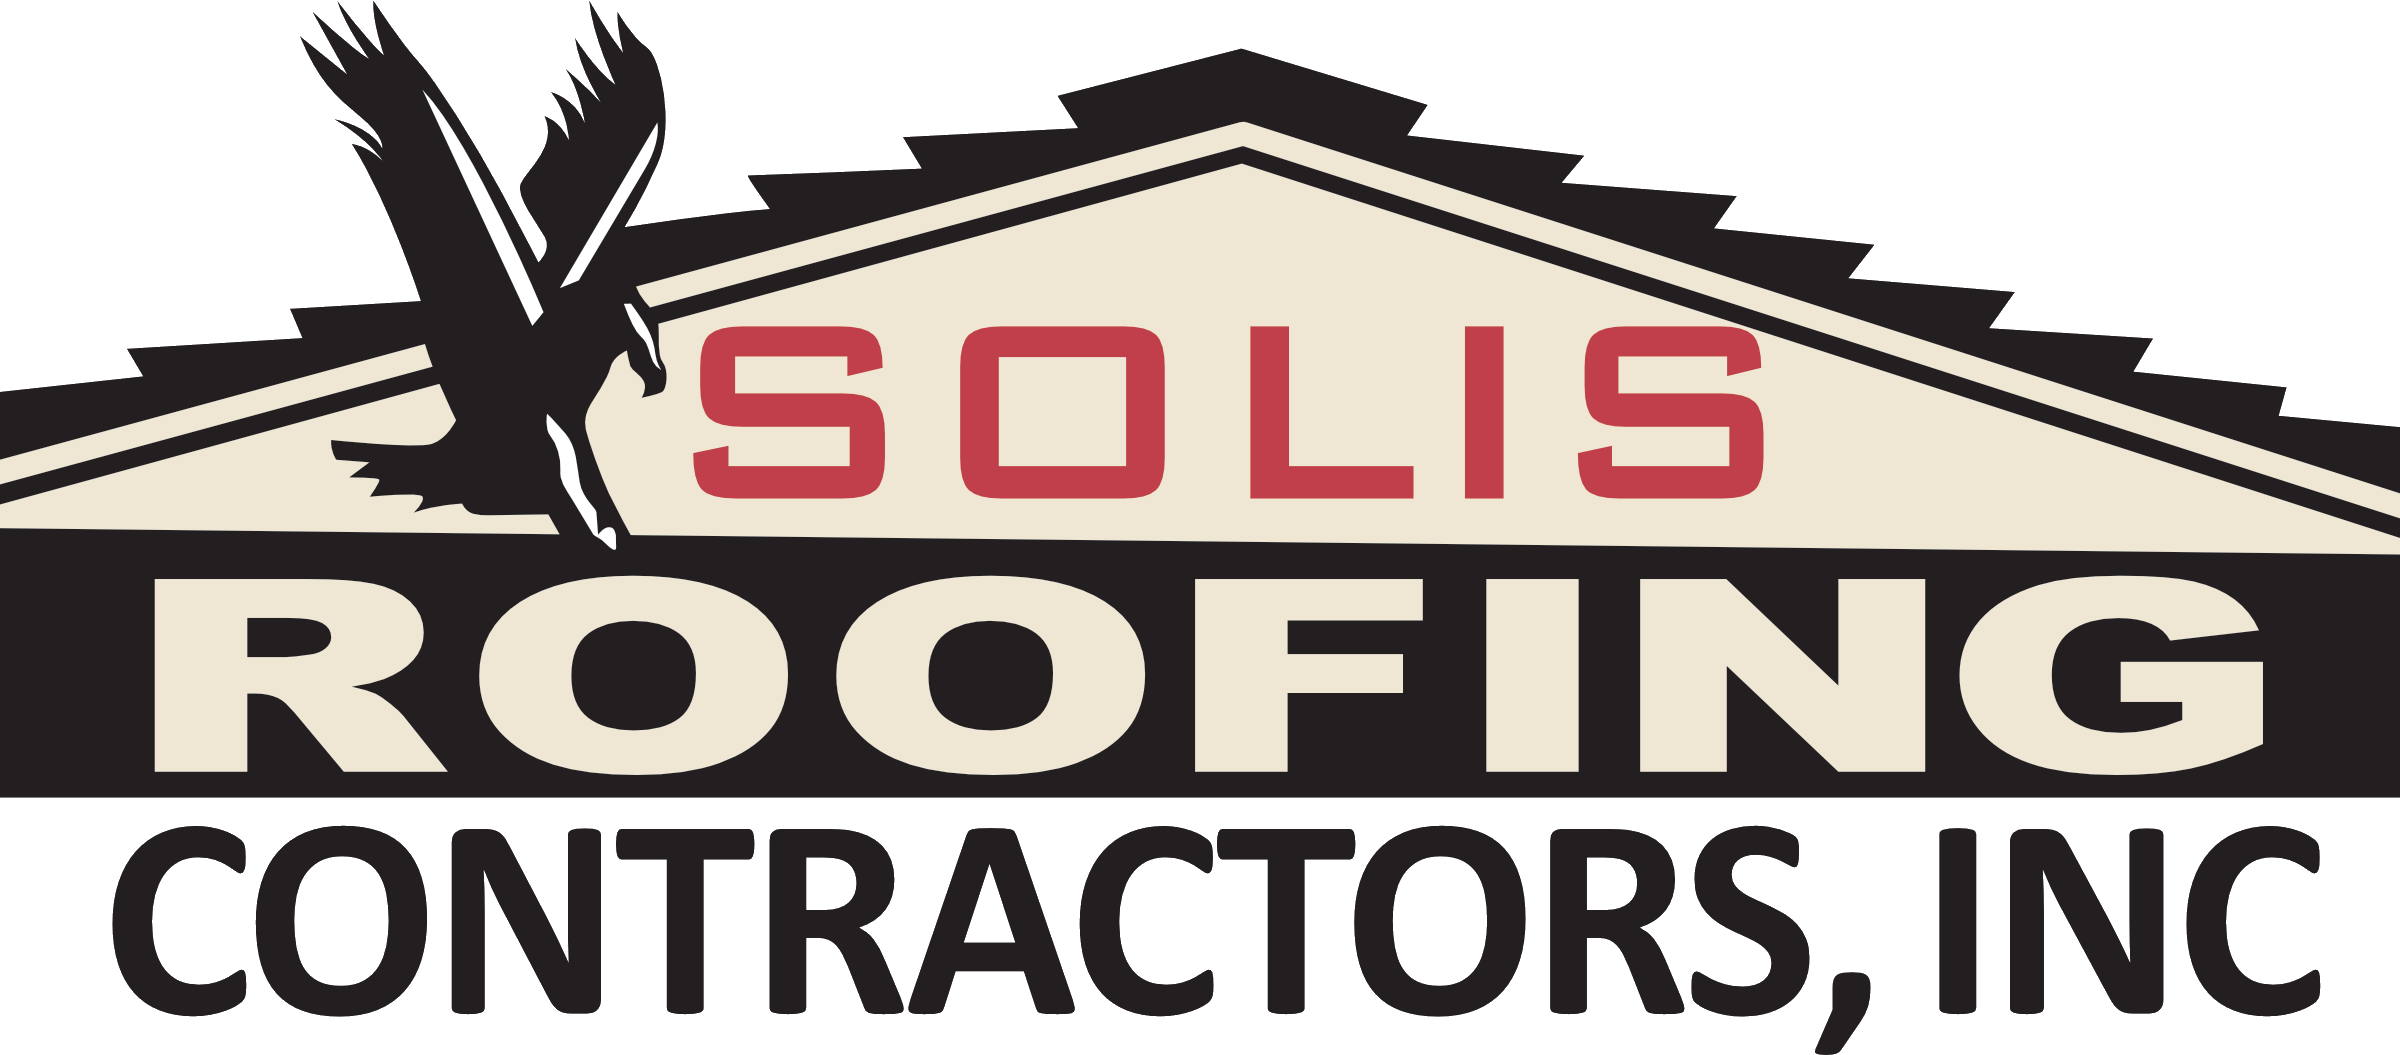 Roofing Contractor Local SEO Results 3